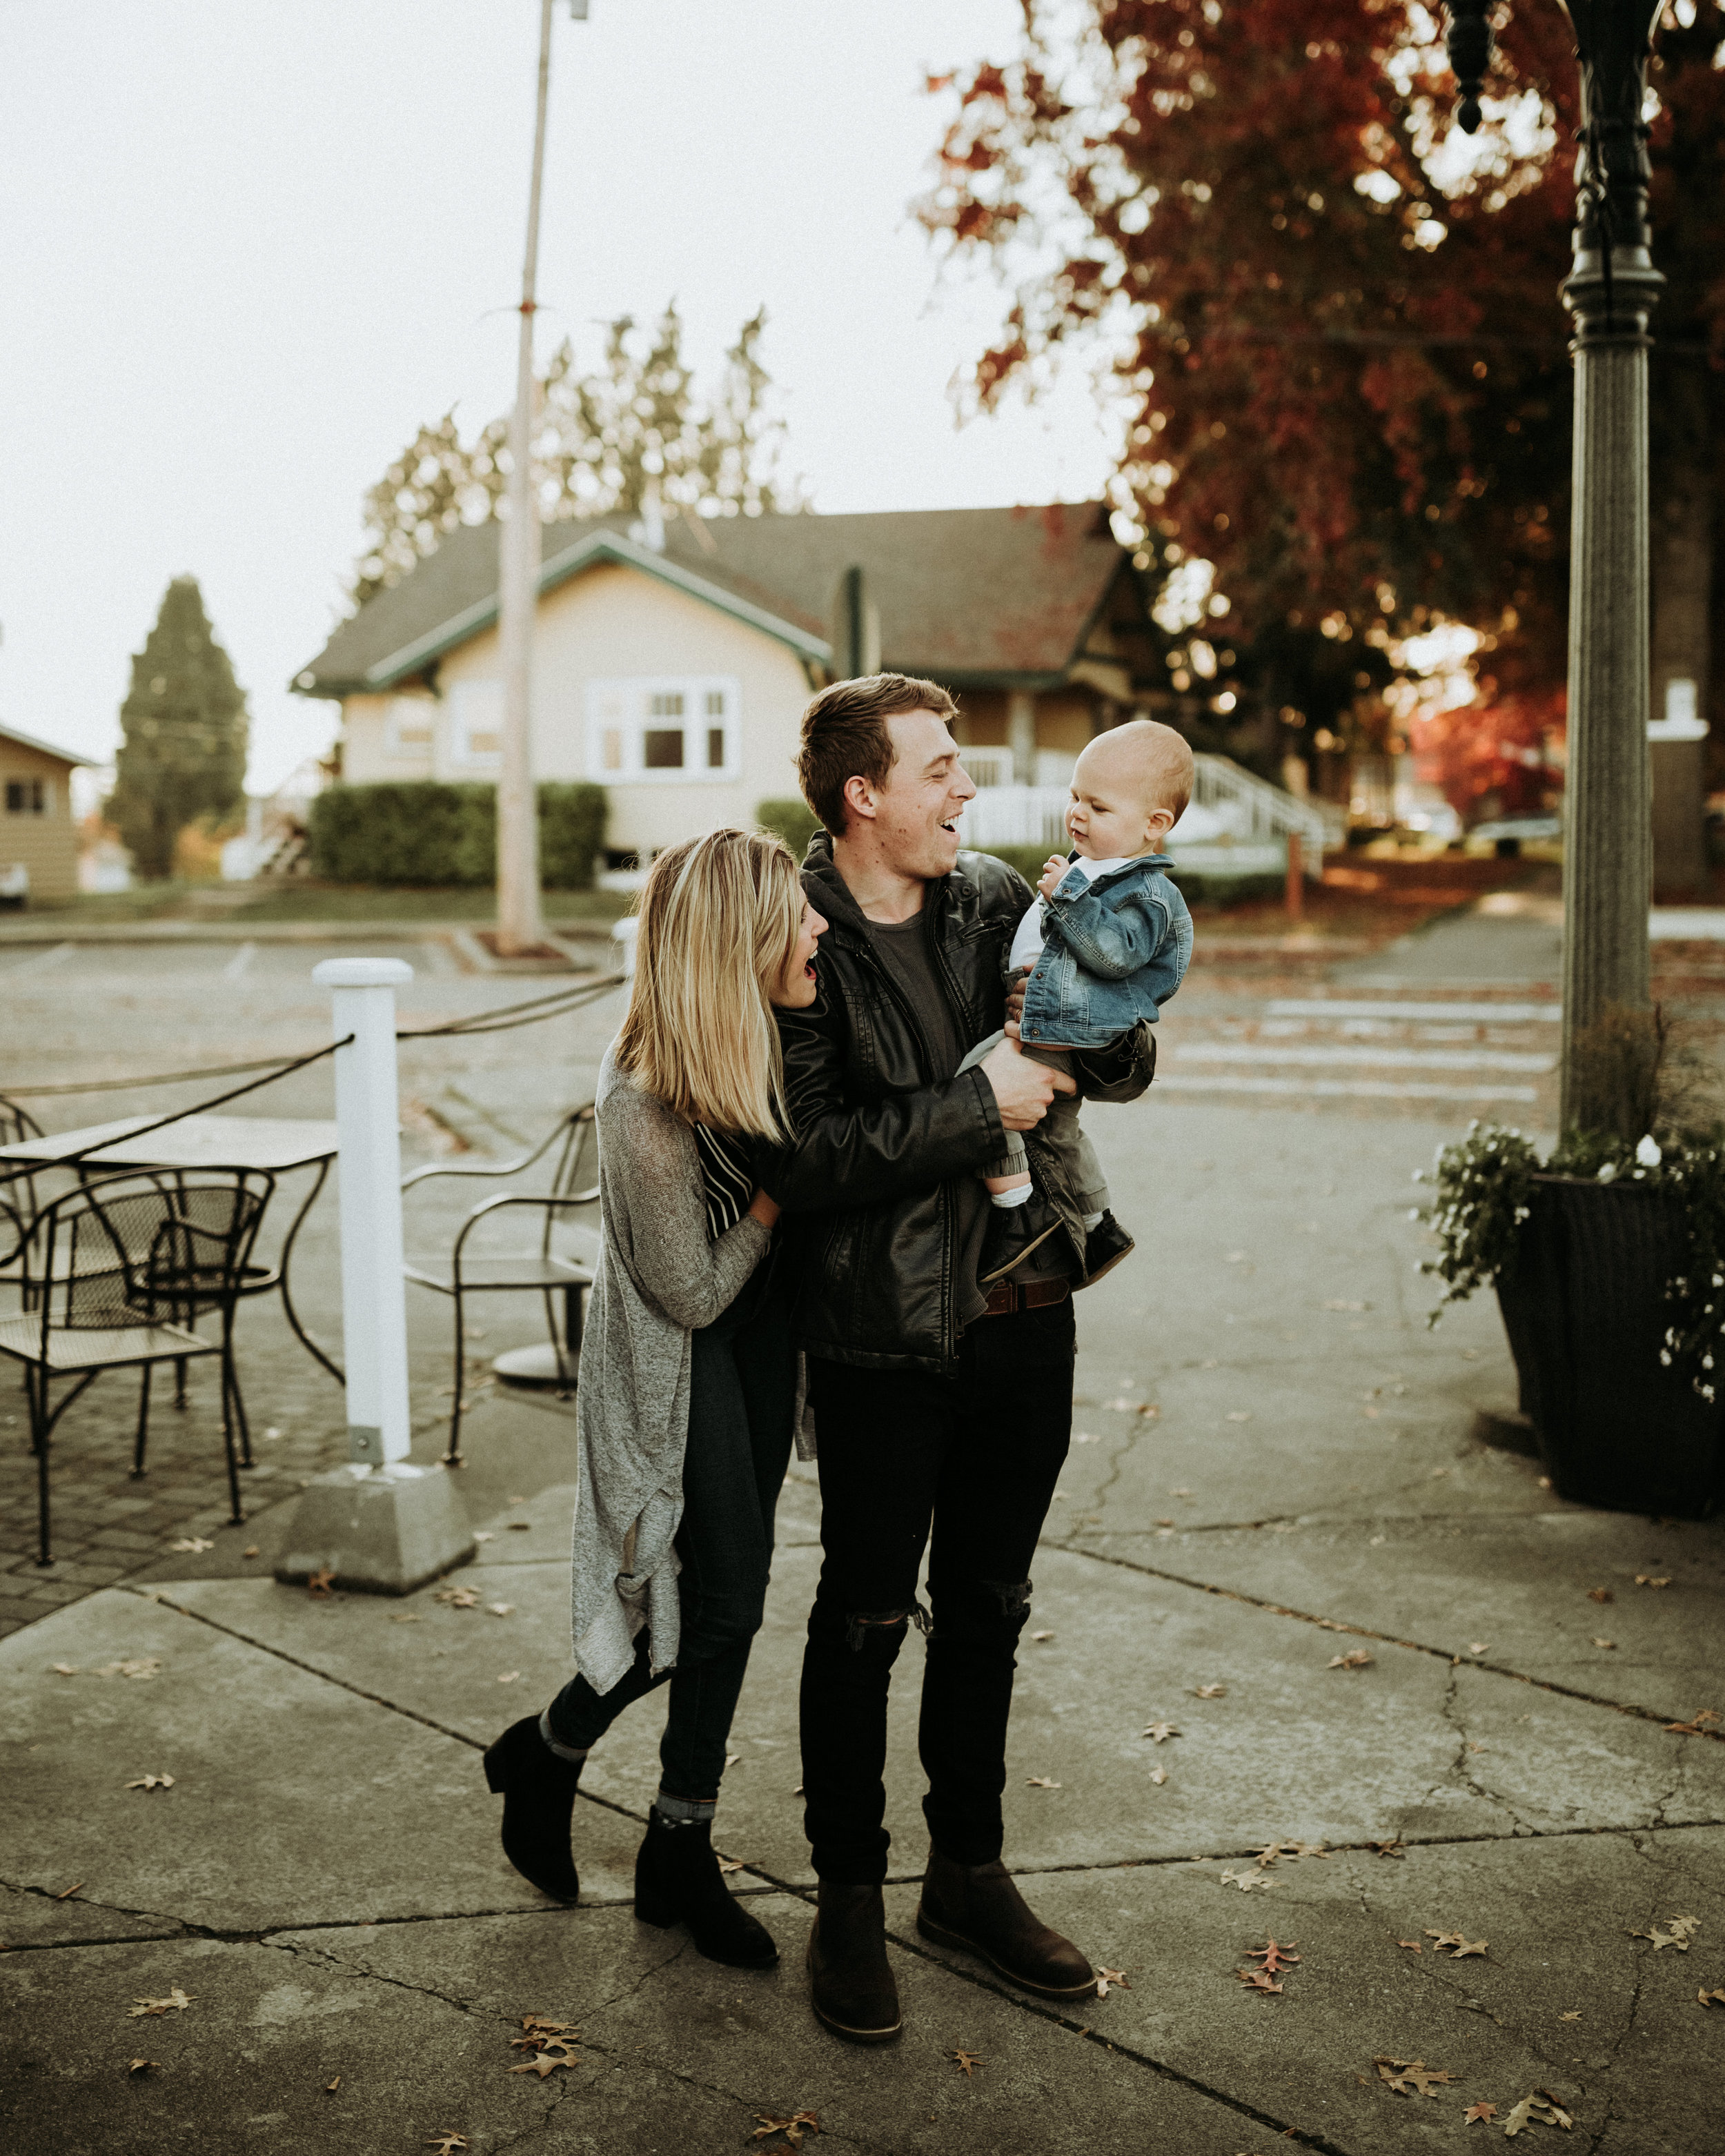 Family-Photographer-Bellingham-WA-Brianne-Bell-Photography-(Simpson)